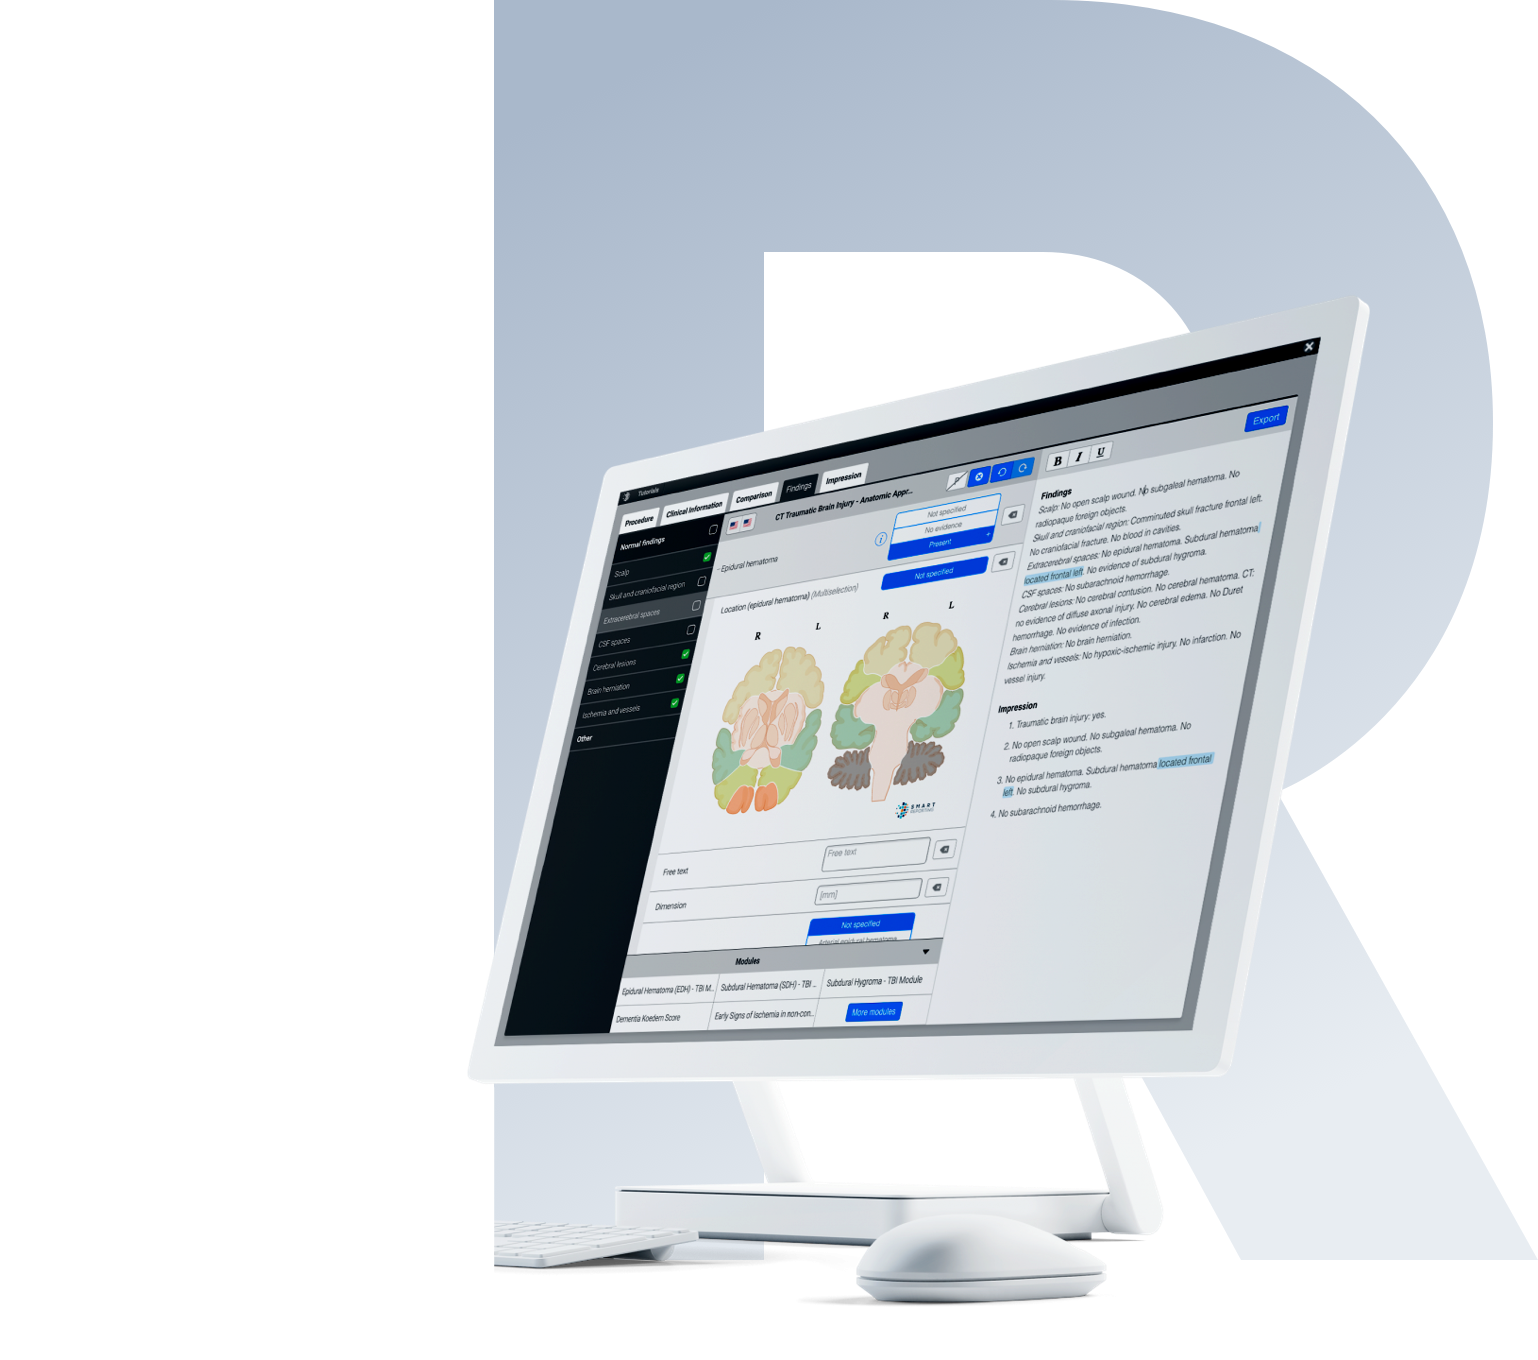 Screen with creation of a structured Report of the brain using infoboxes and sketch elements